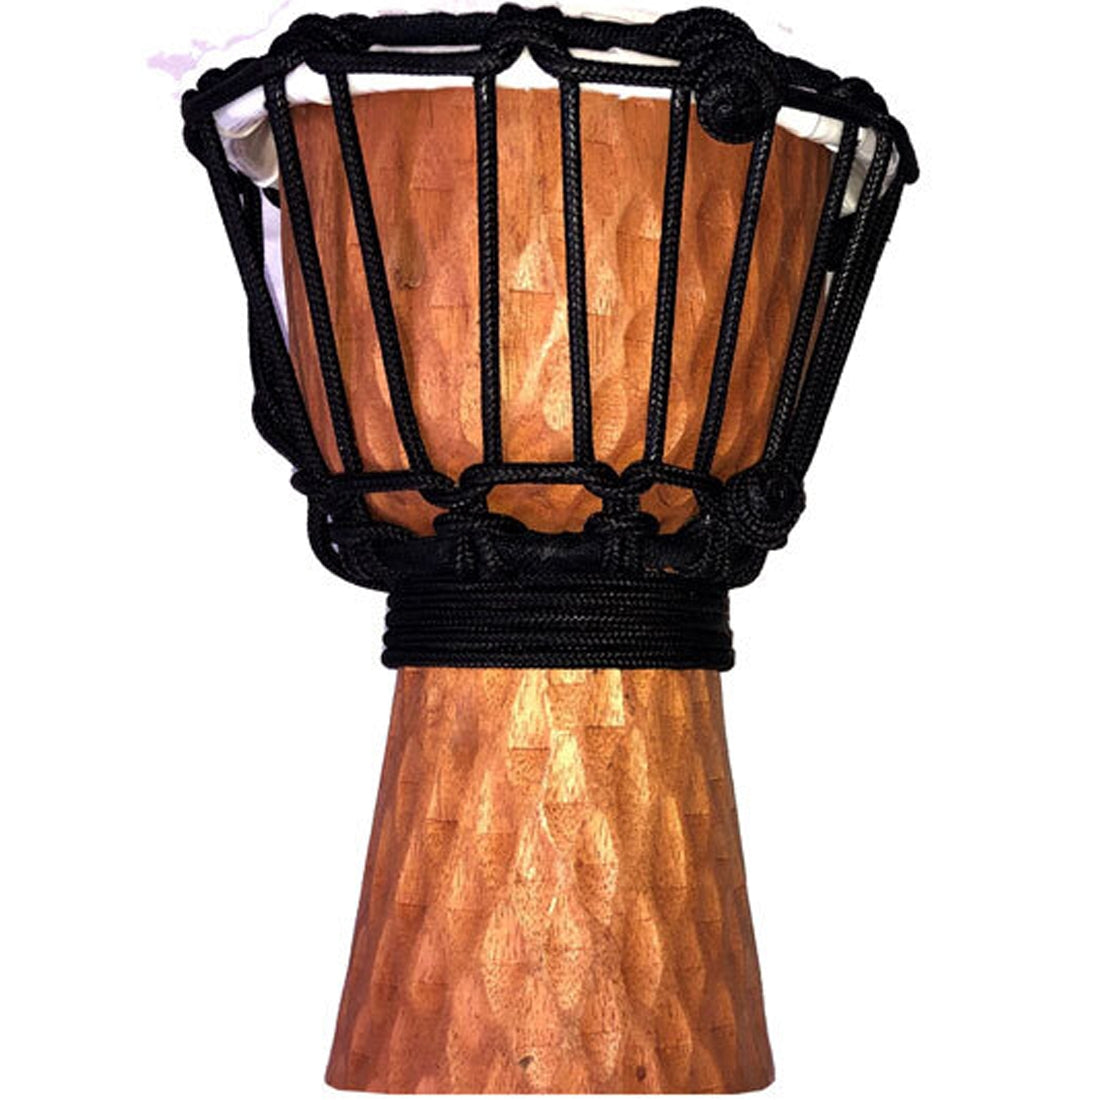 Toca Wooden Mini Djembe 4inch Carved Cherry Stain - SDMINICSS